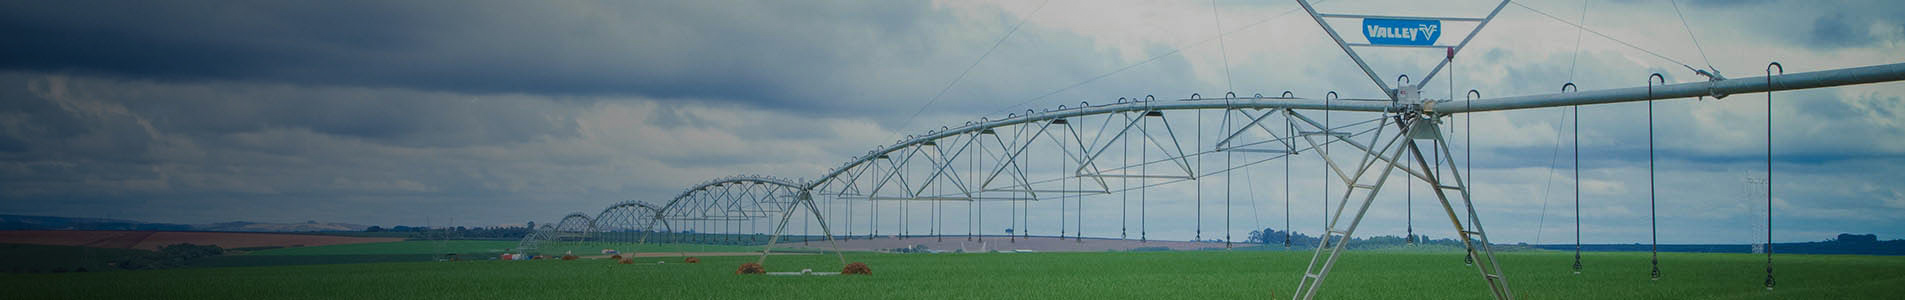 valley irrigation resources